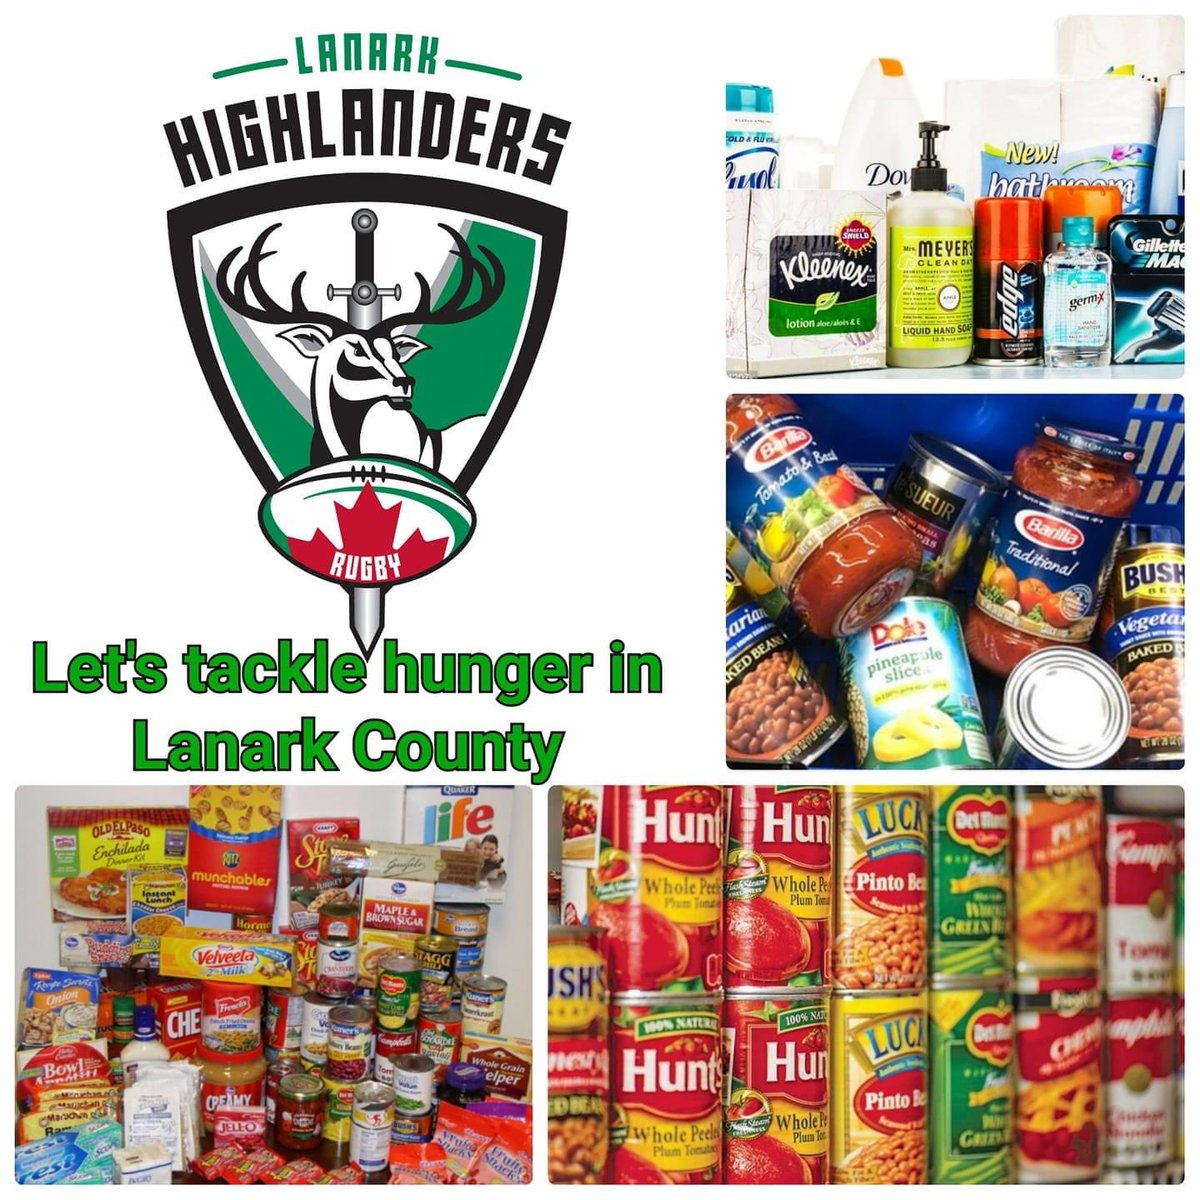 During our down time and isolation it's important to still give back. We have asked all players to drop some donations for the Lanark County Food bank (s) at the end of their driveways for pick up. #rugbyfamily #giveback @RugbyOntario @eorugby @RugbyCanadapic.twitter.com/Ki5dACvQ6Y